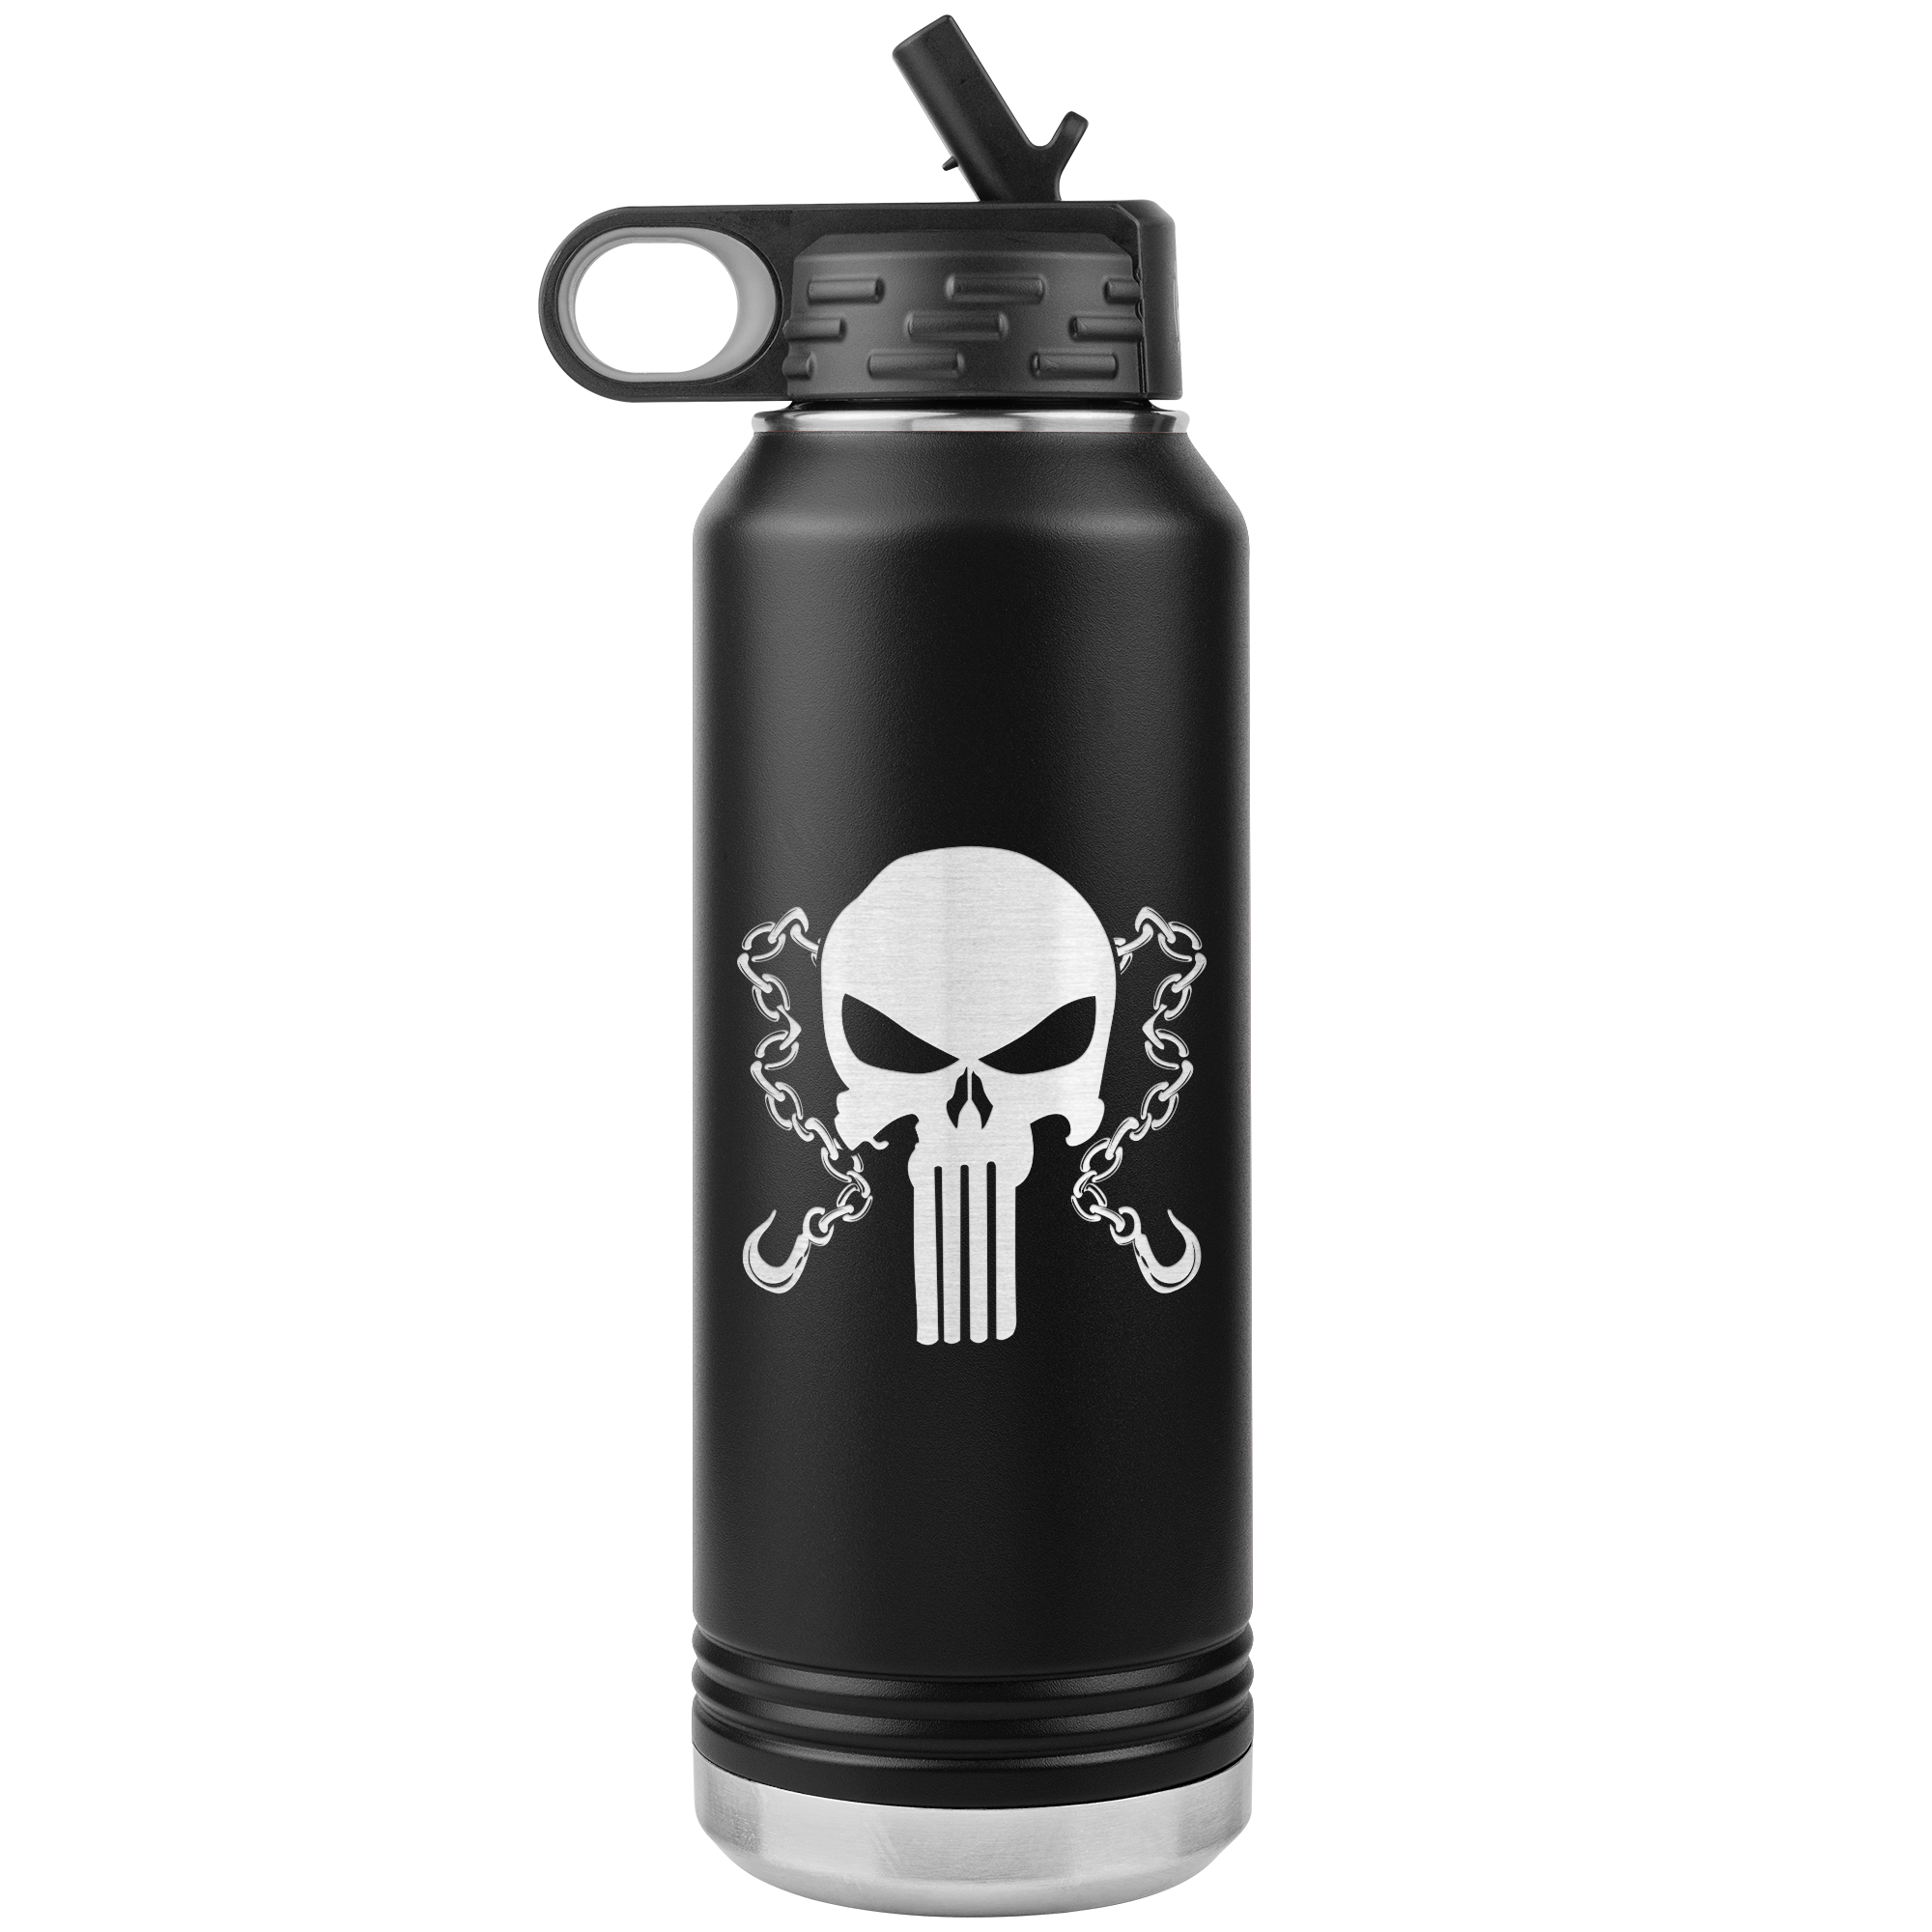 Towing 32 oz Water Bottle Tumbler